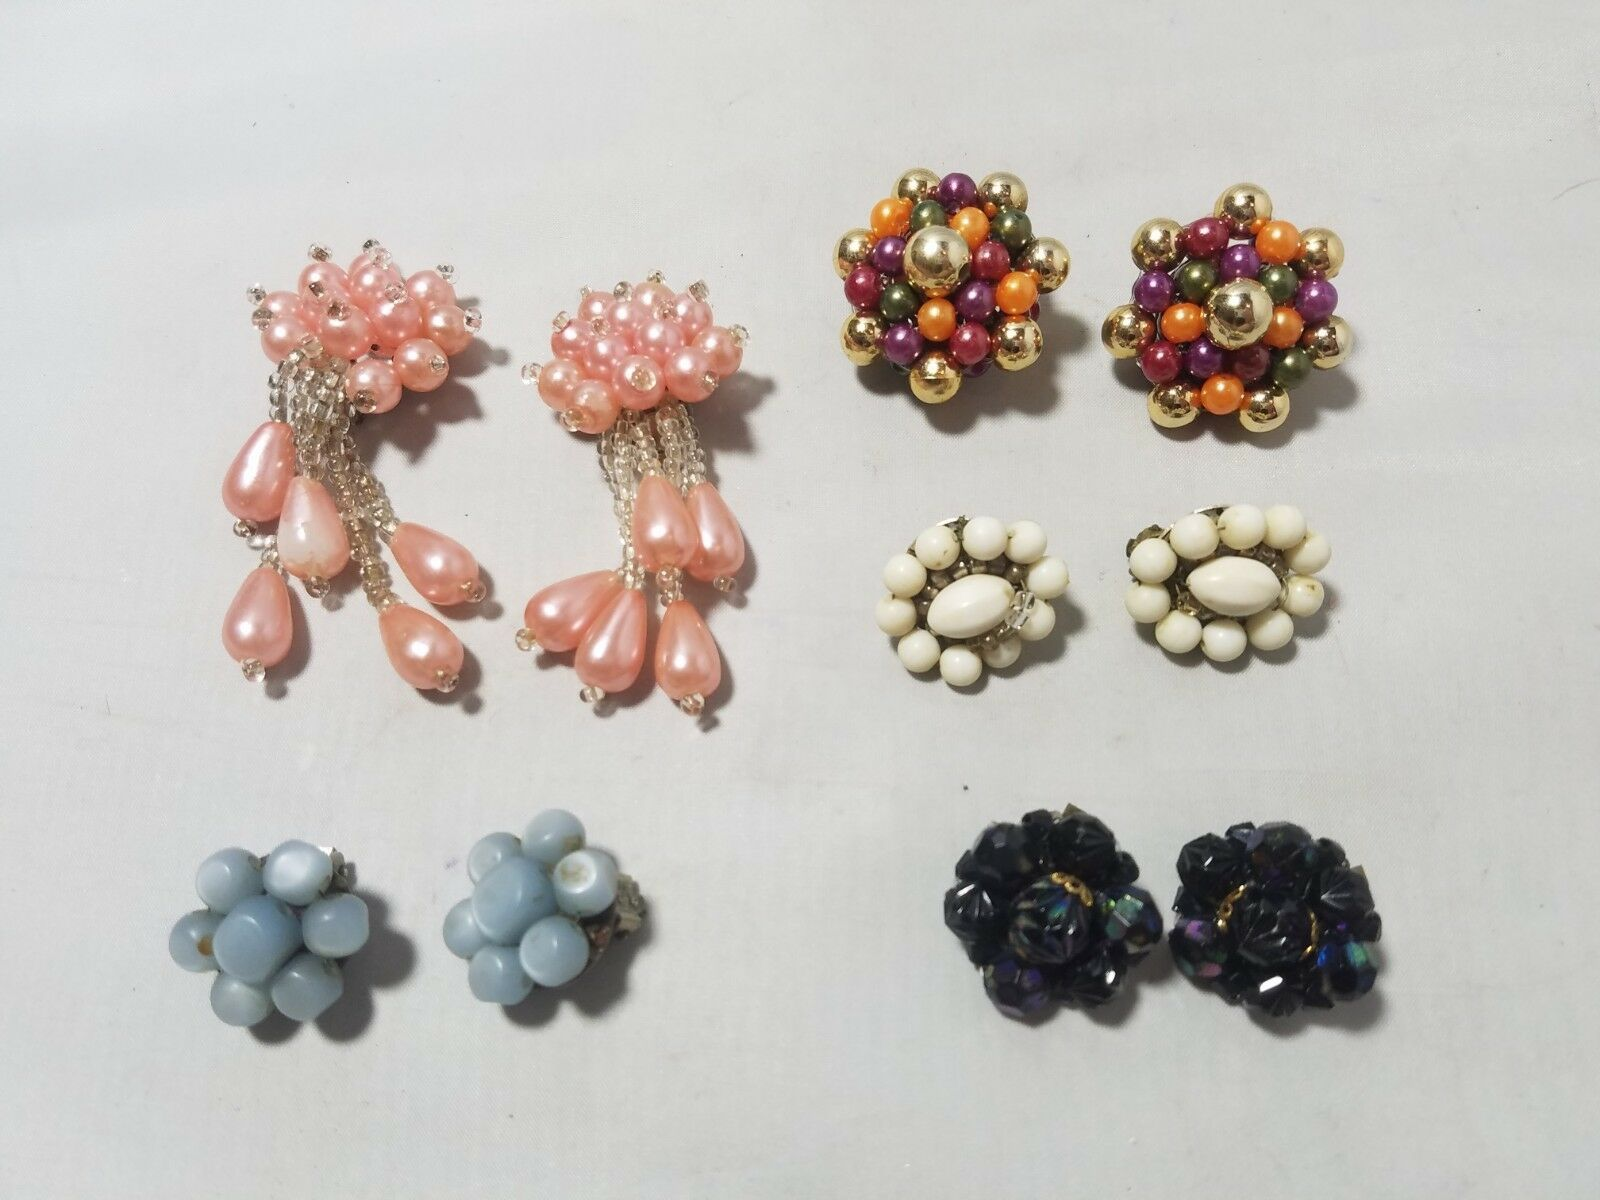 Vintage Fashion Earrings Cluster Bead Clip On Retro Mod Lot of 5 Pairs